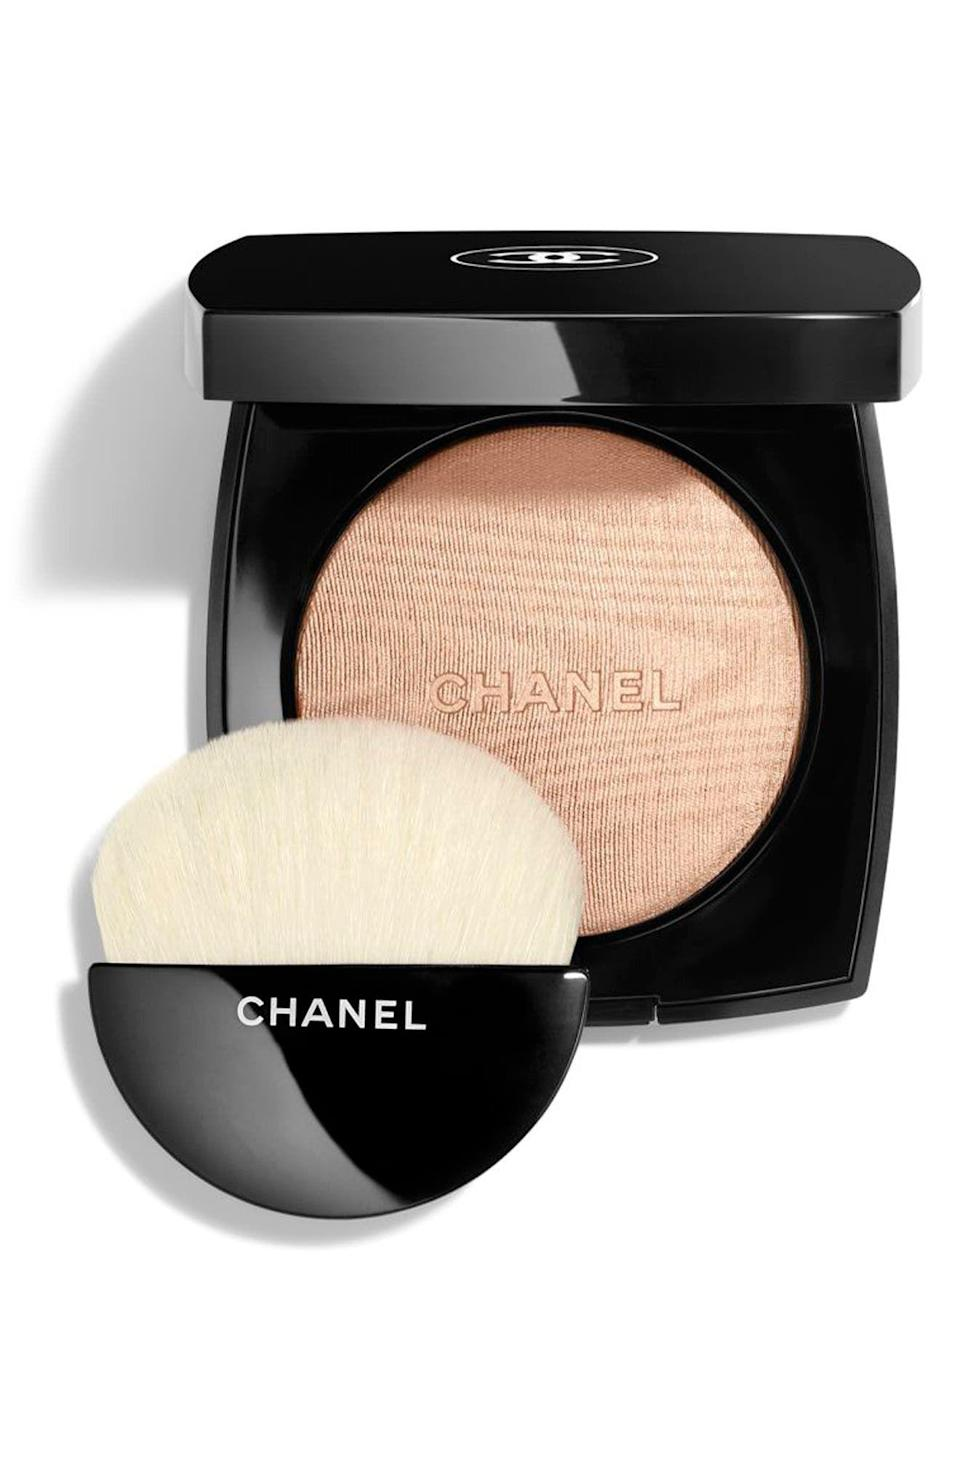 """<p><strong>CHANEL</strong></p><p>nordstrom.com</p><p><strong>$58.00</strong></p><p><a href=""""https://go.redirectingat.com?id=74968X1596630&url=https%3A%2F%2Fwww.nordstrom.com%2Fs%2Fchanel-highlighting-powder-compact%2F4746247&sref=https%3A%2F%2Fwww.townandcountrymag.com%2Fstyle%2Fbeauty-products%2Fg36256297%2Fbest-compact-mirrors%2F"""" rel=""""nofollow noopener"""" target=""""_blank"""" data-ylk=""""slk:Shop Now"""" class=""""link rapid-noclick-resp"""">Shop Now</a></p><p>A quick face-check, but make it Chanel. (Also one of the softest, prettiest highlighters you can use). </p>"""